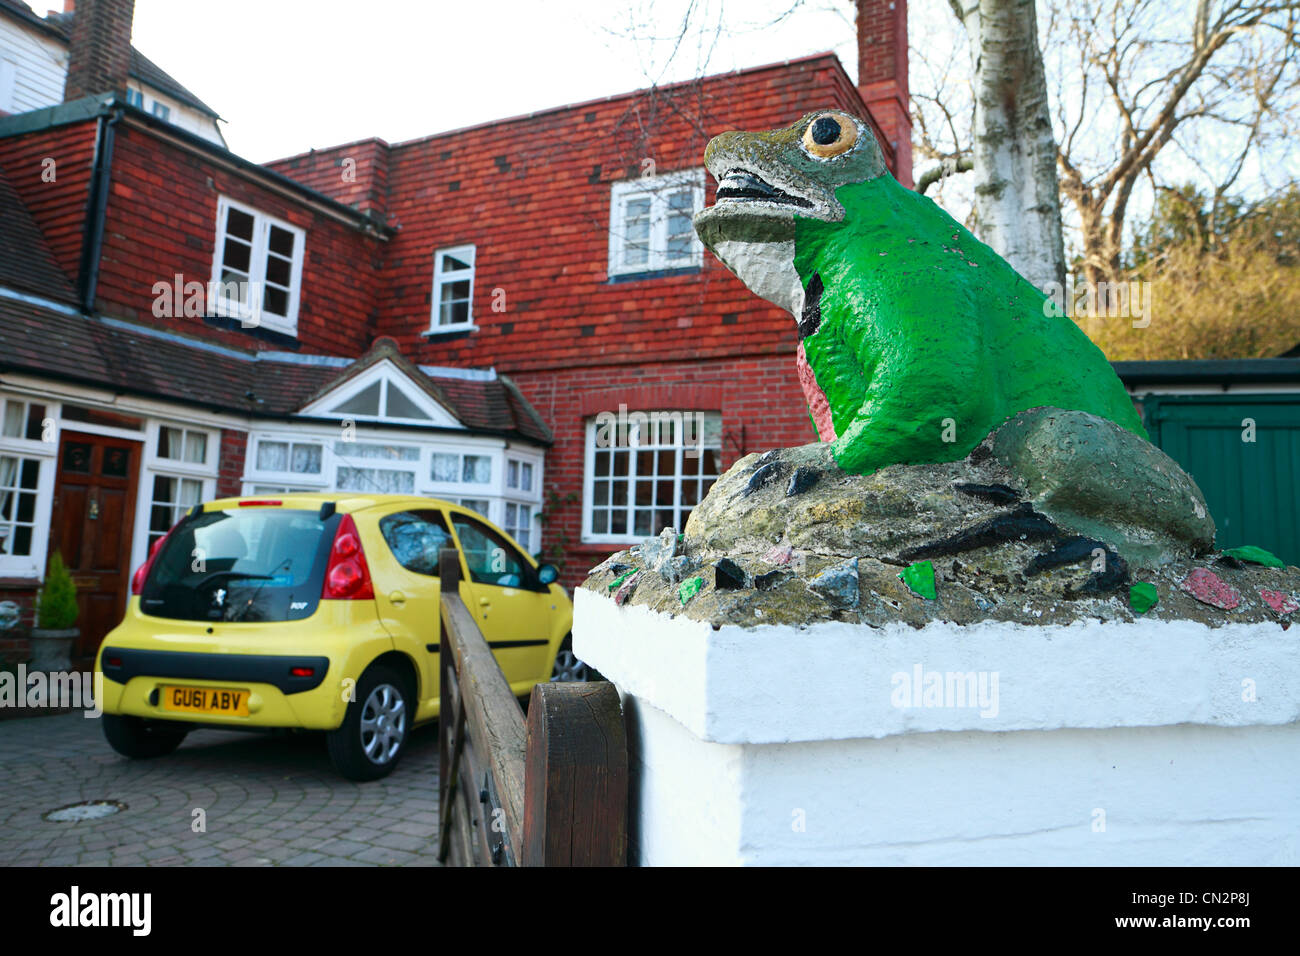 Painted stone toad on gatepost of house, Bexhill, East Sussex, UK - Stock Image